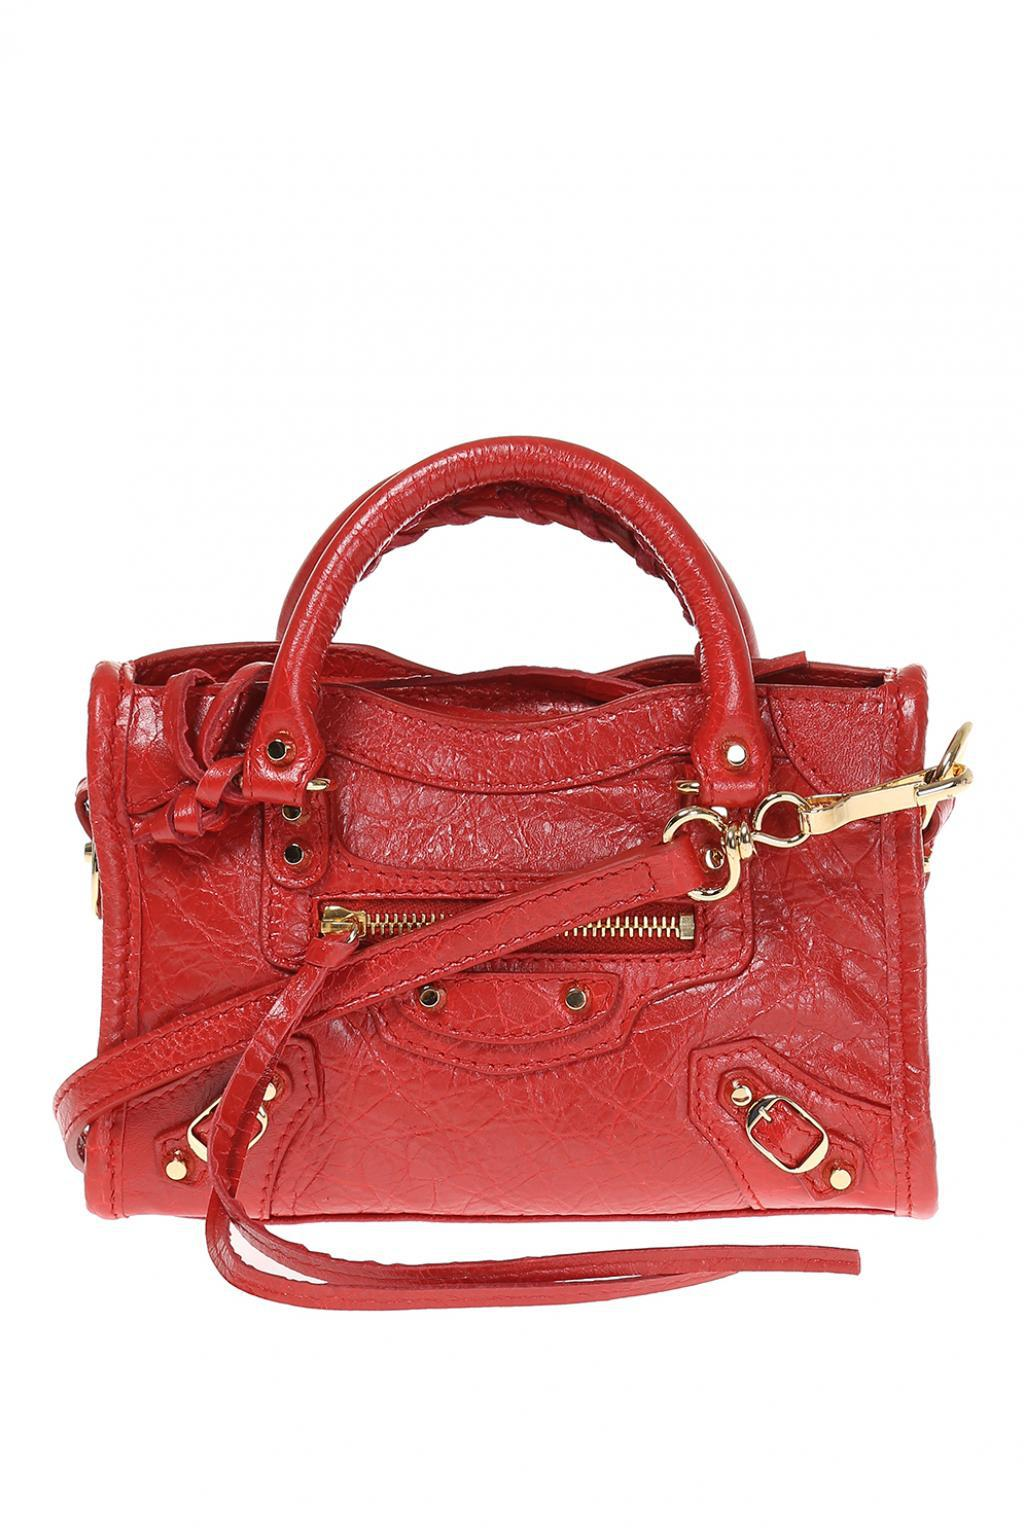 0dddeeab451b Lyst - Balenciaga  nano City  Shoulder Bag in Red